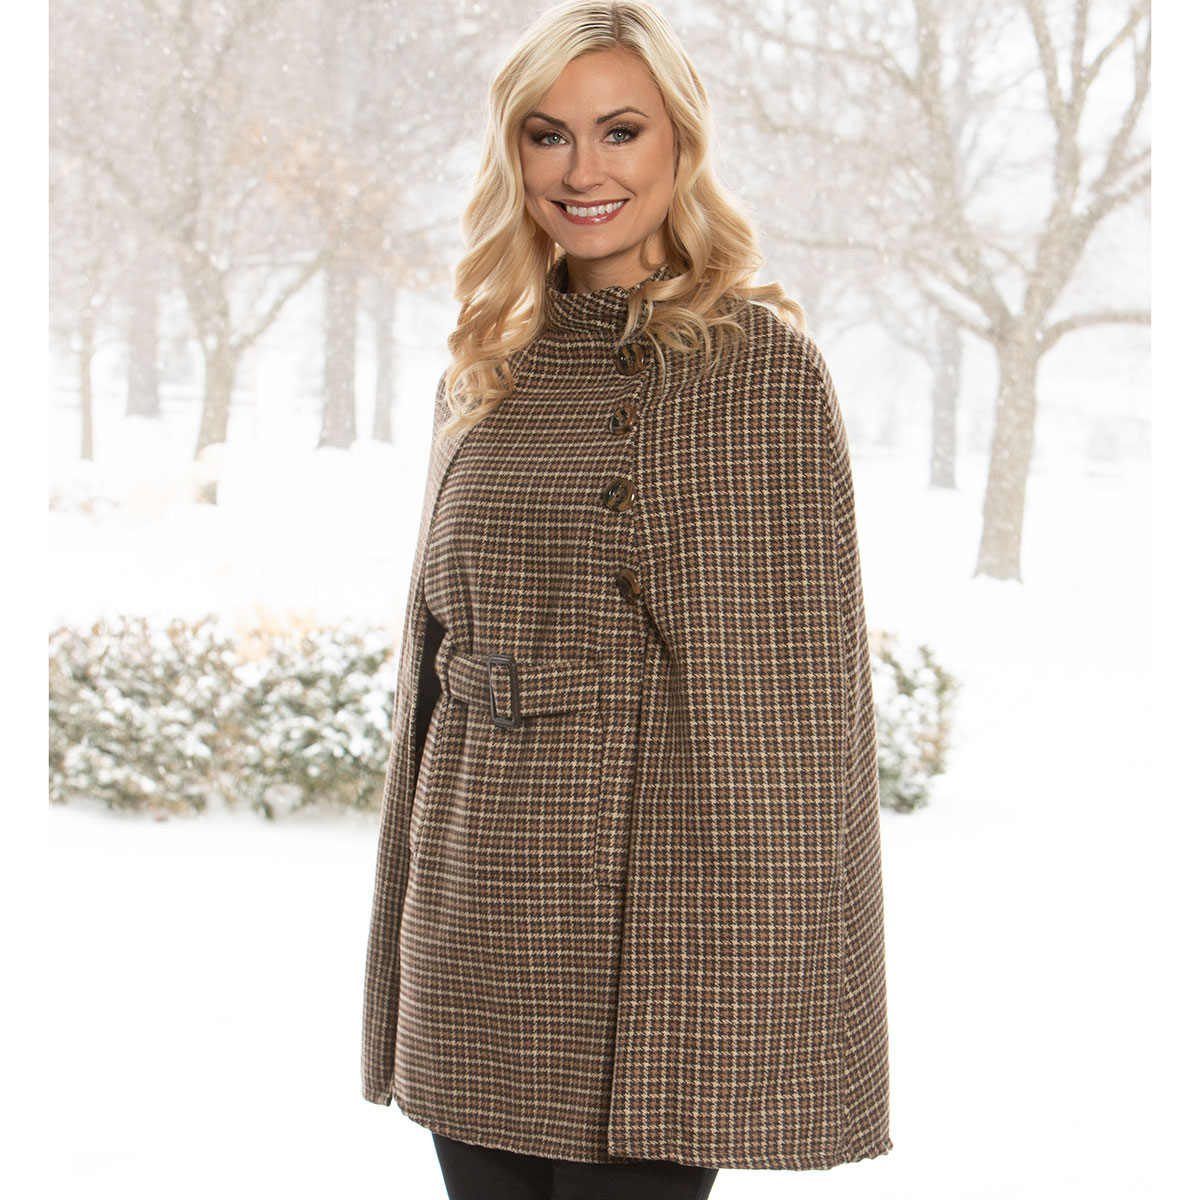 Brown/Tan Houndstooth Coat with Belt